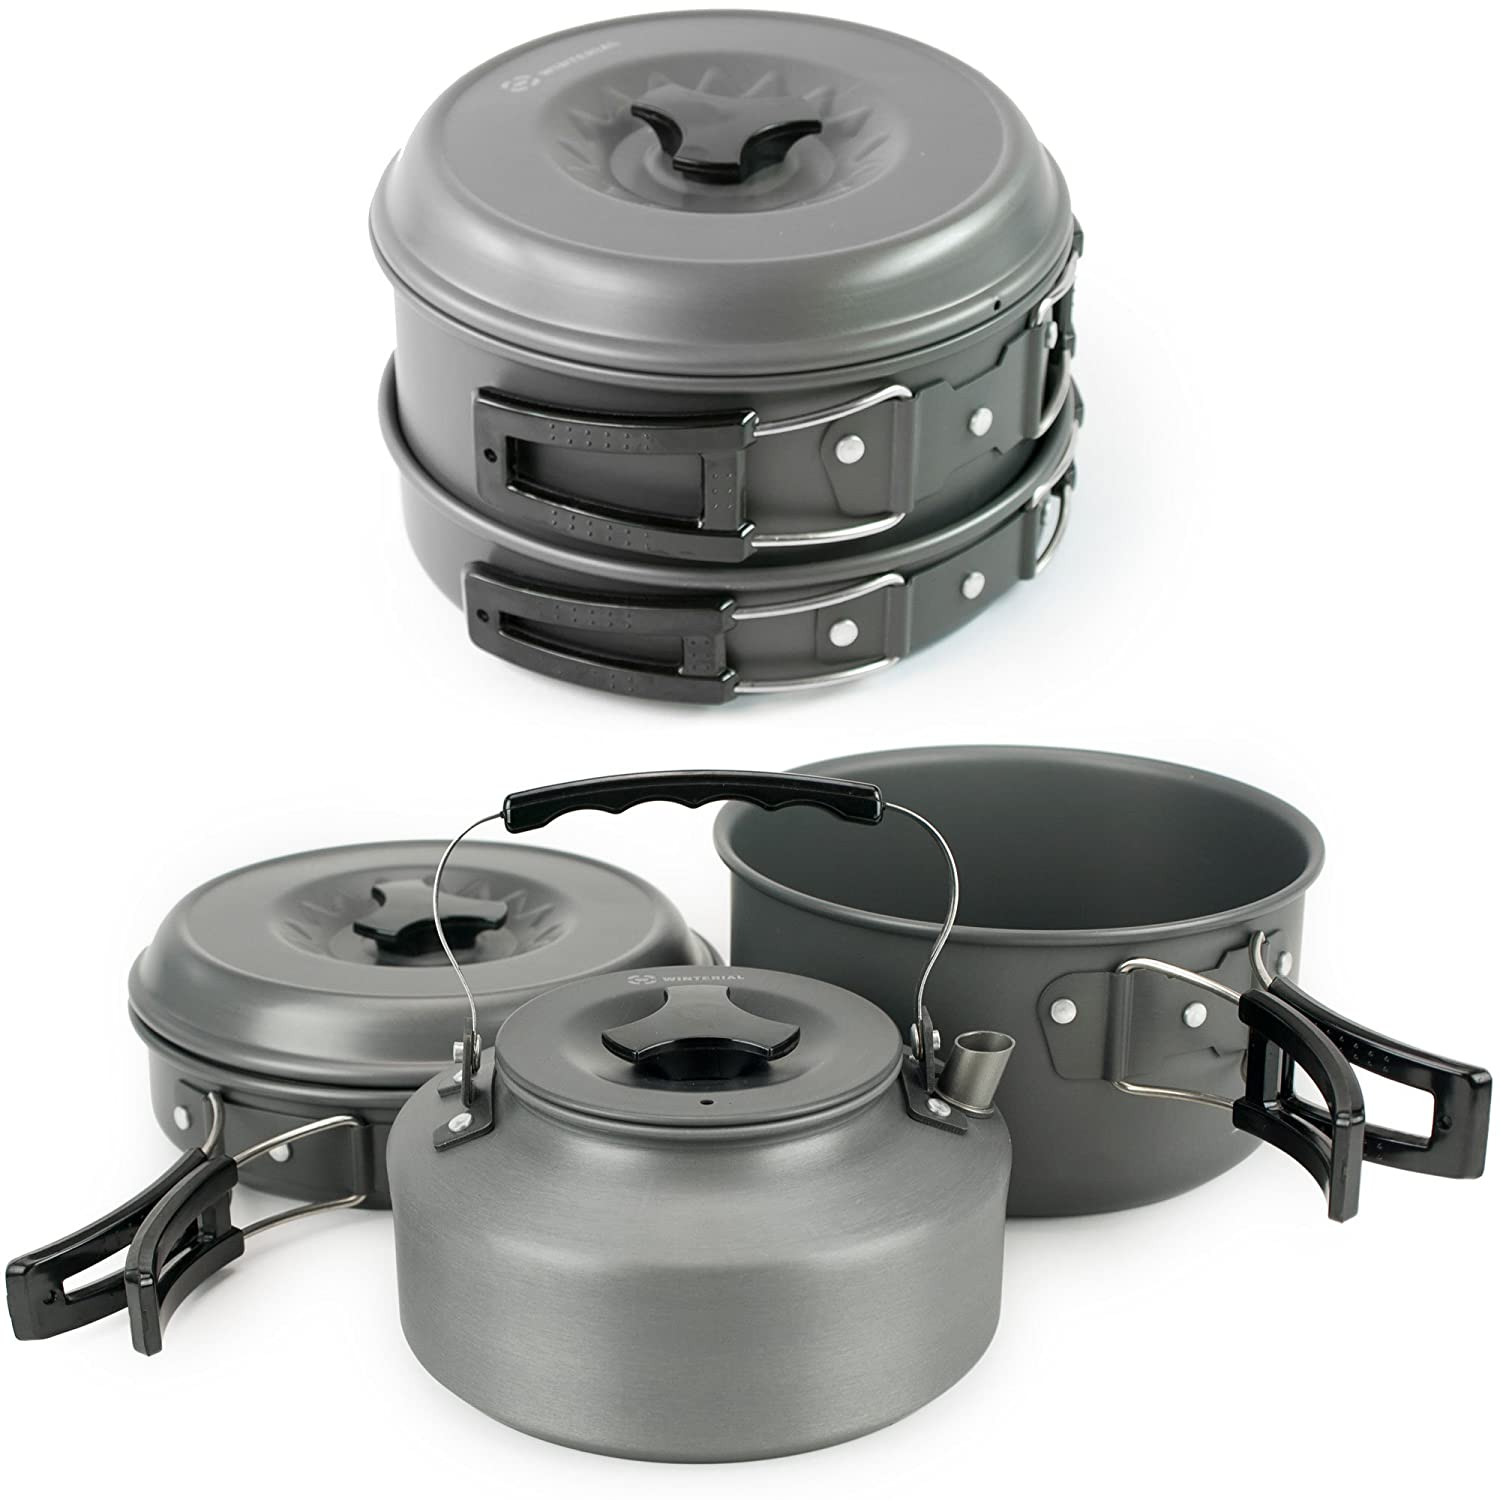 2. Winterial Camping Cookware and Pot Set 10 Piece Set